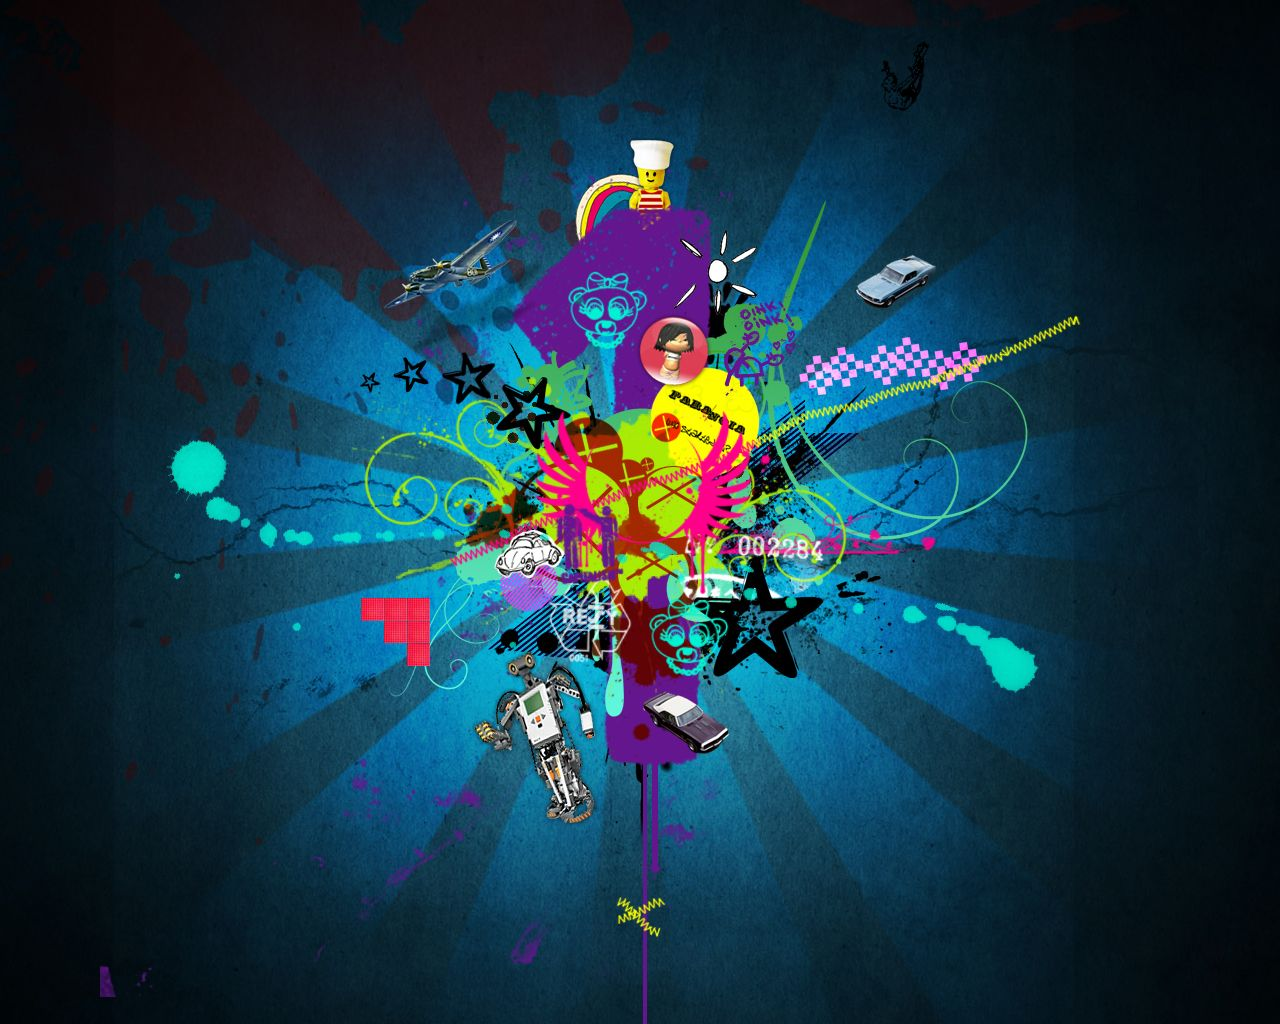 Sport Wallpaper Design: Cool Graphic Design Wallpapers Full HD Points